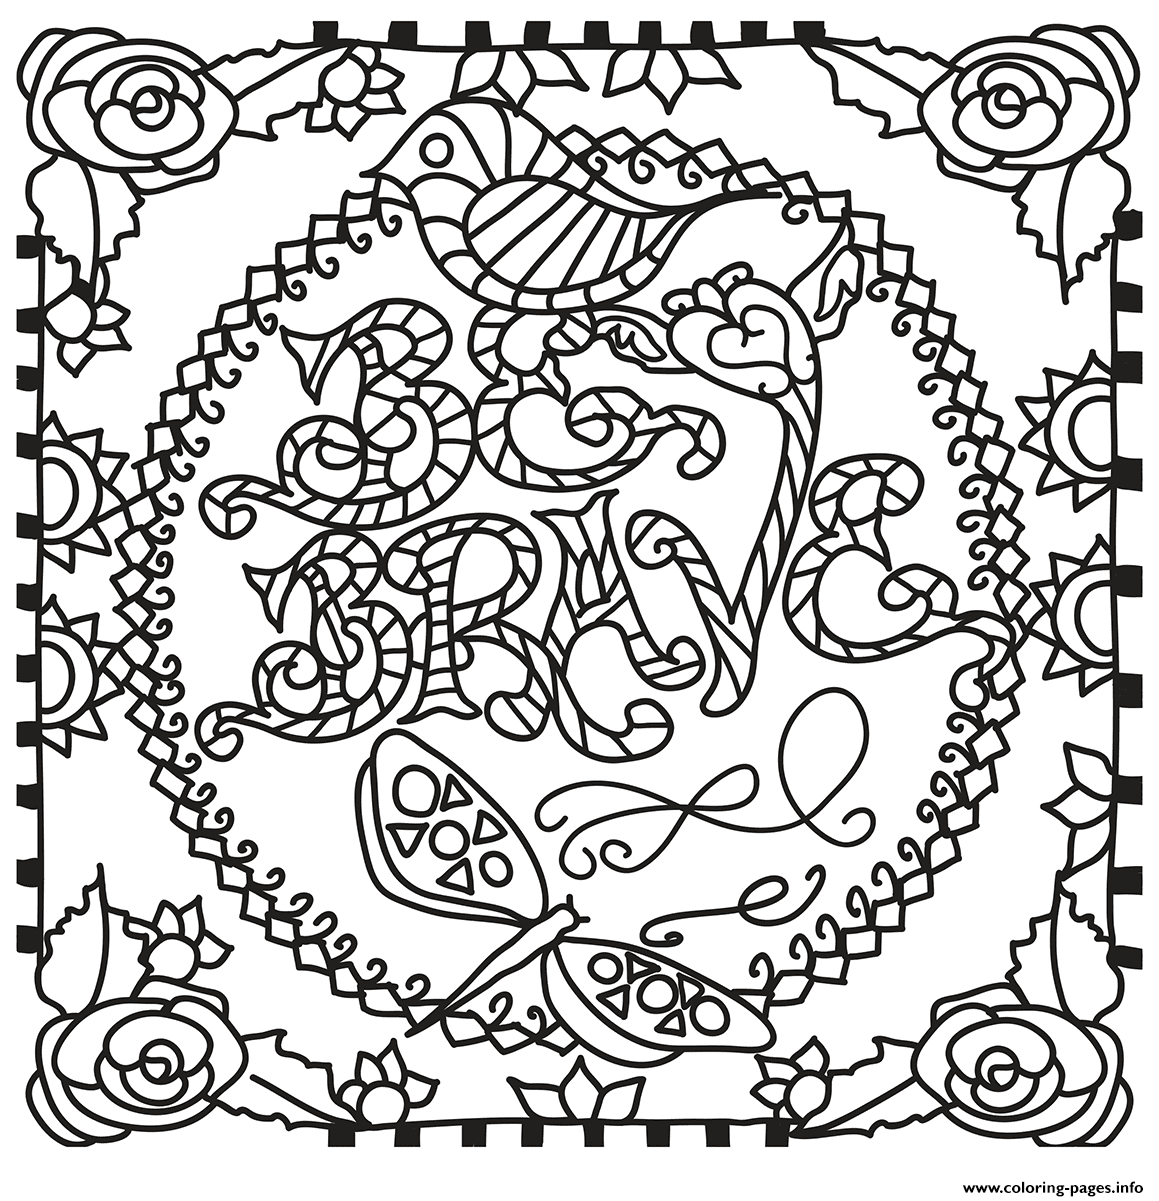 Be Brave coloring pages